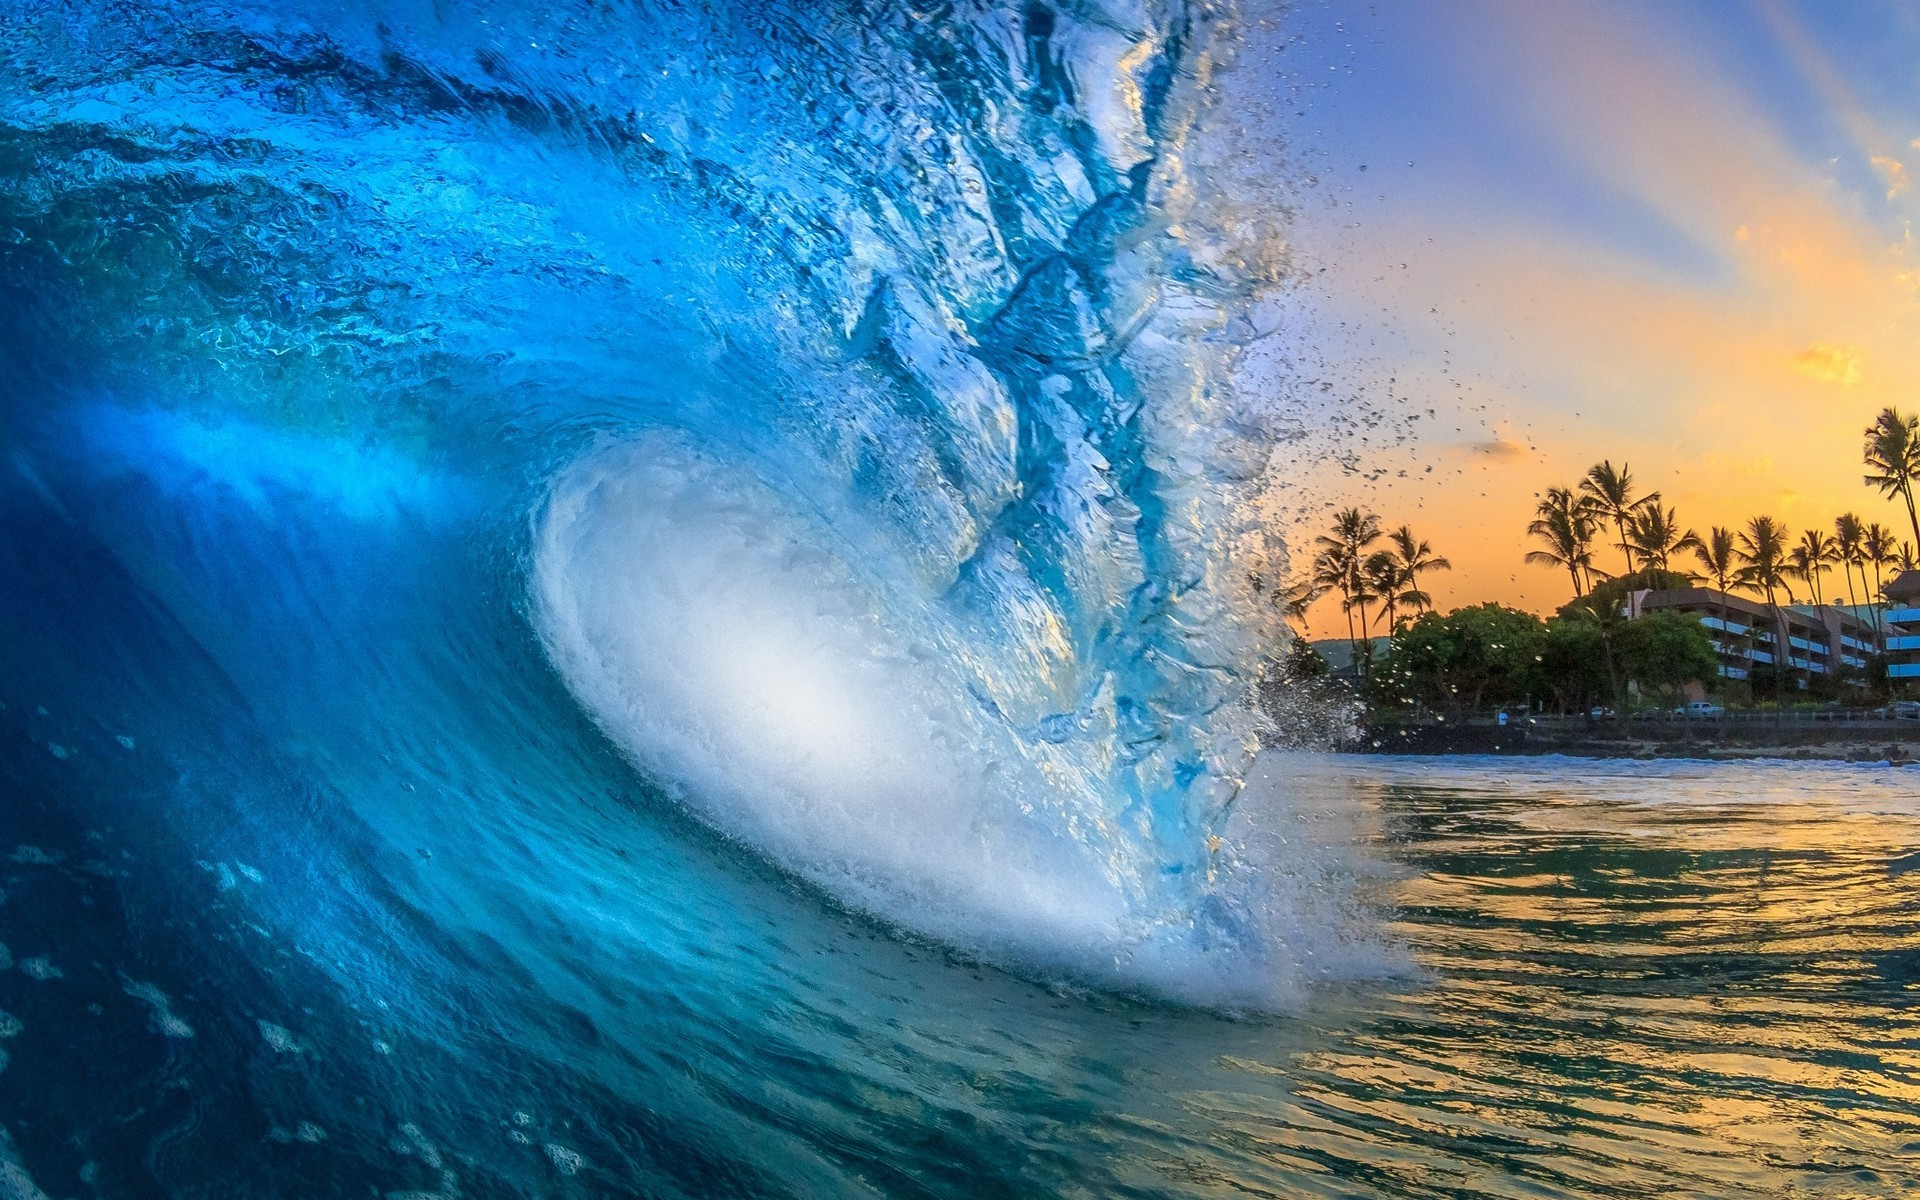 Beach waves wallpapers for desktop 55 images - Wave pics wallpaper ...